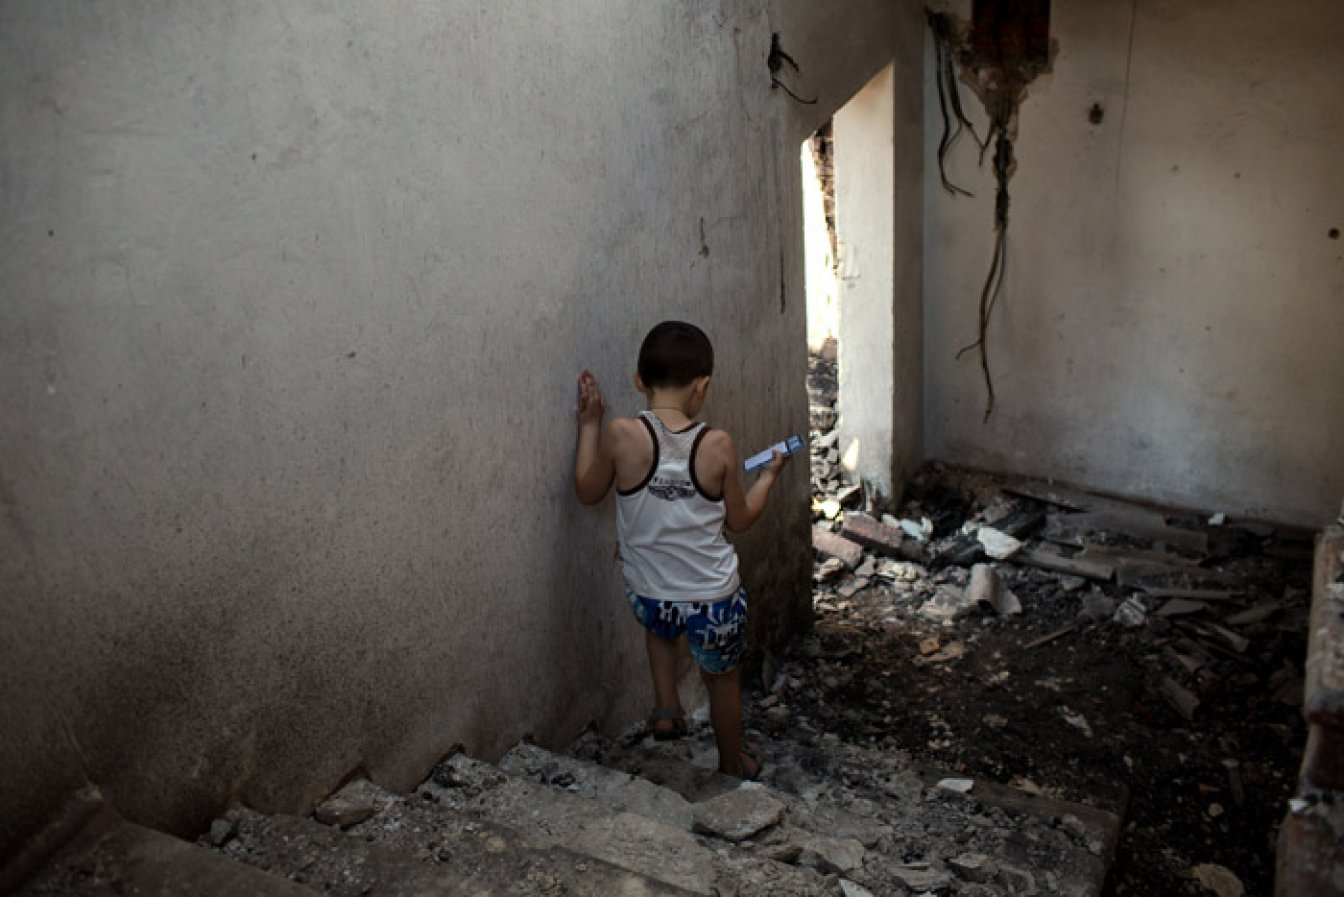 Photo from the report Collateral - The human cost of explosive violence in Ukraine. © Dirk-Jan Visser / PAX